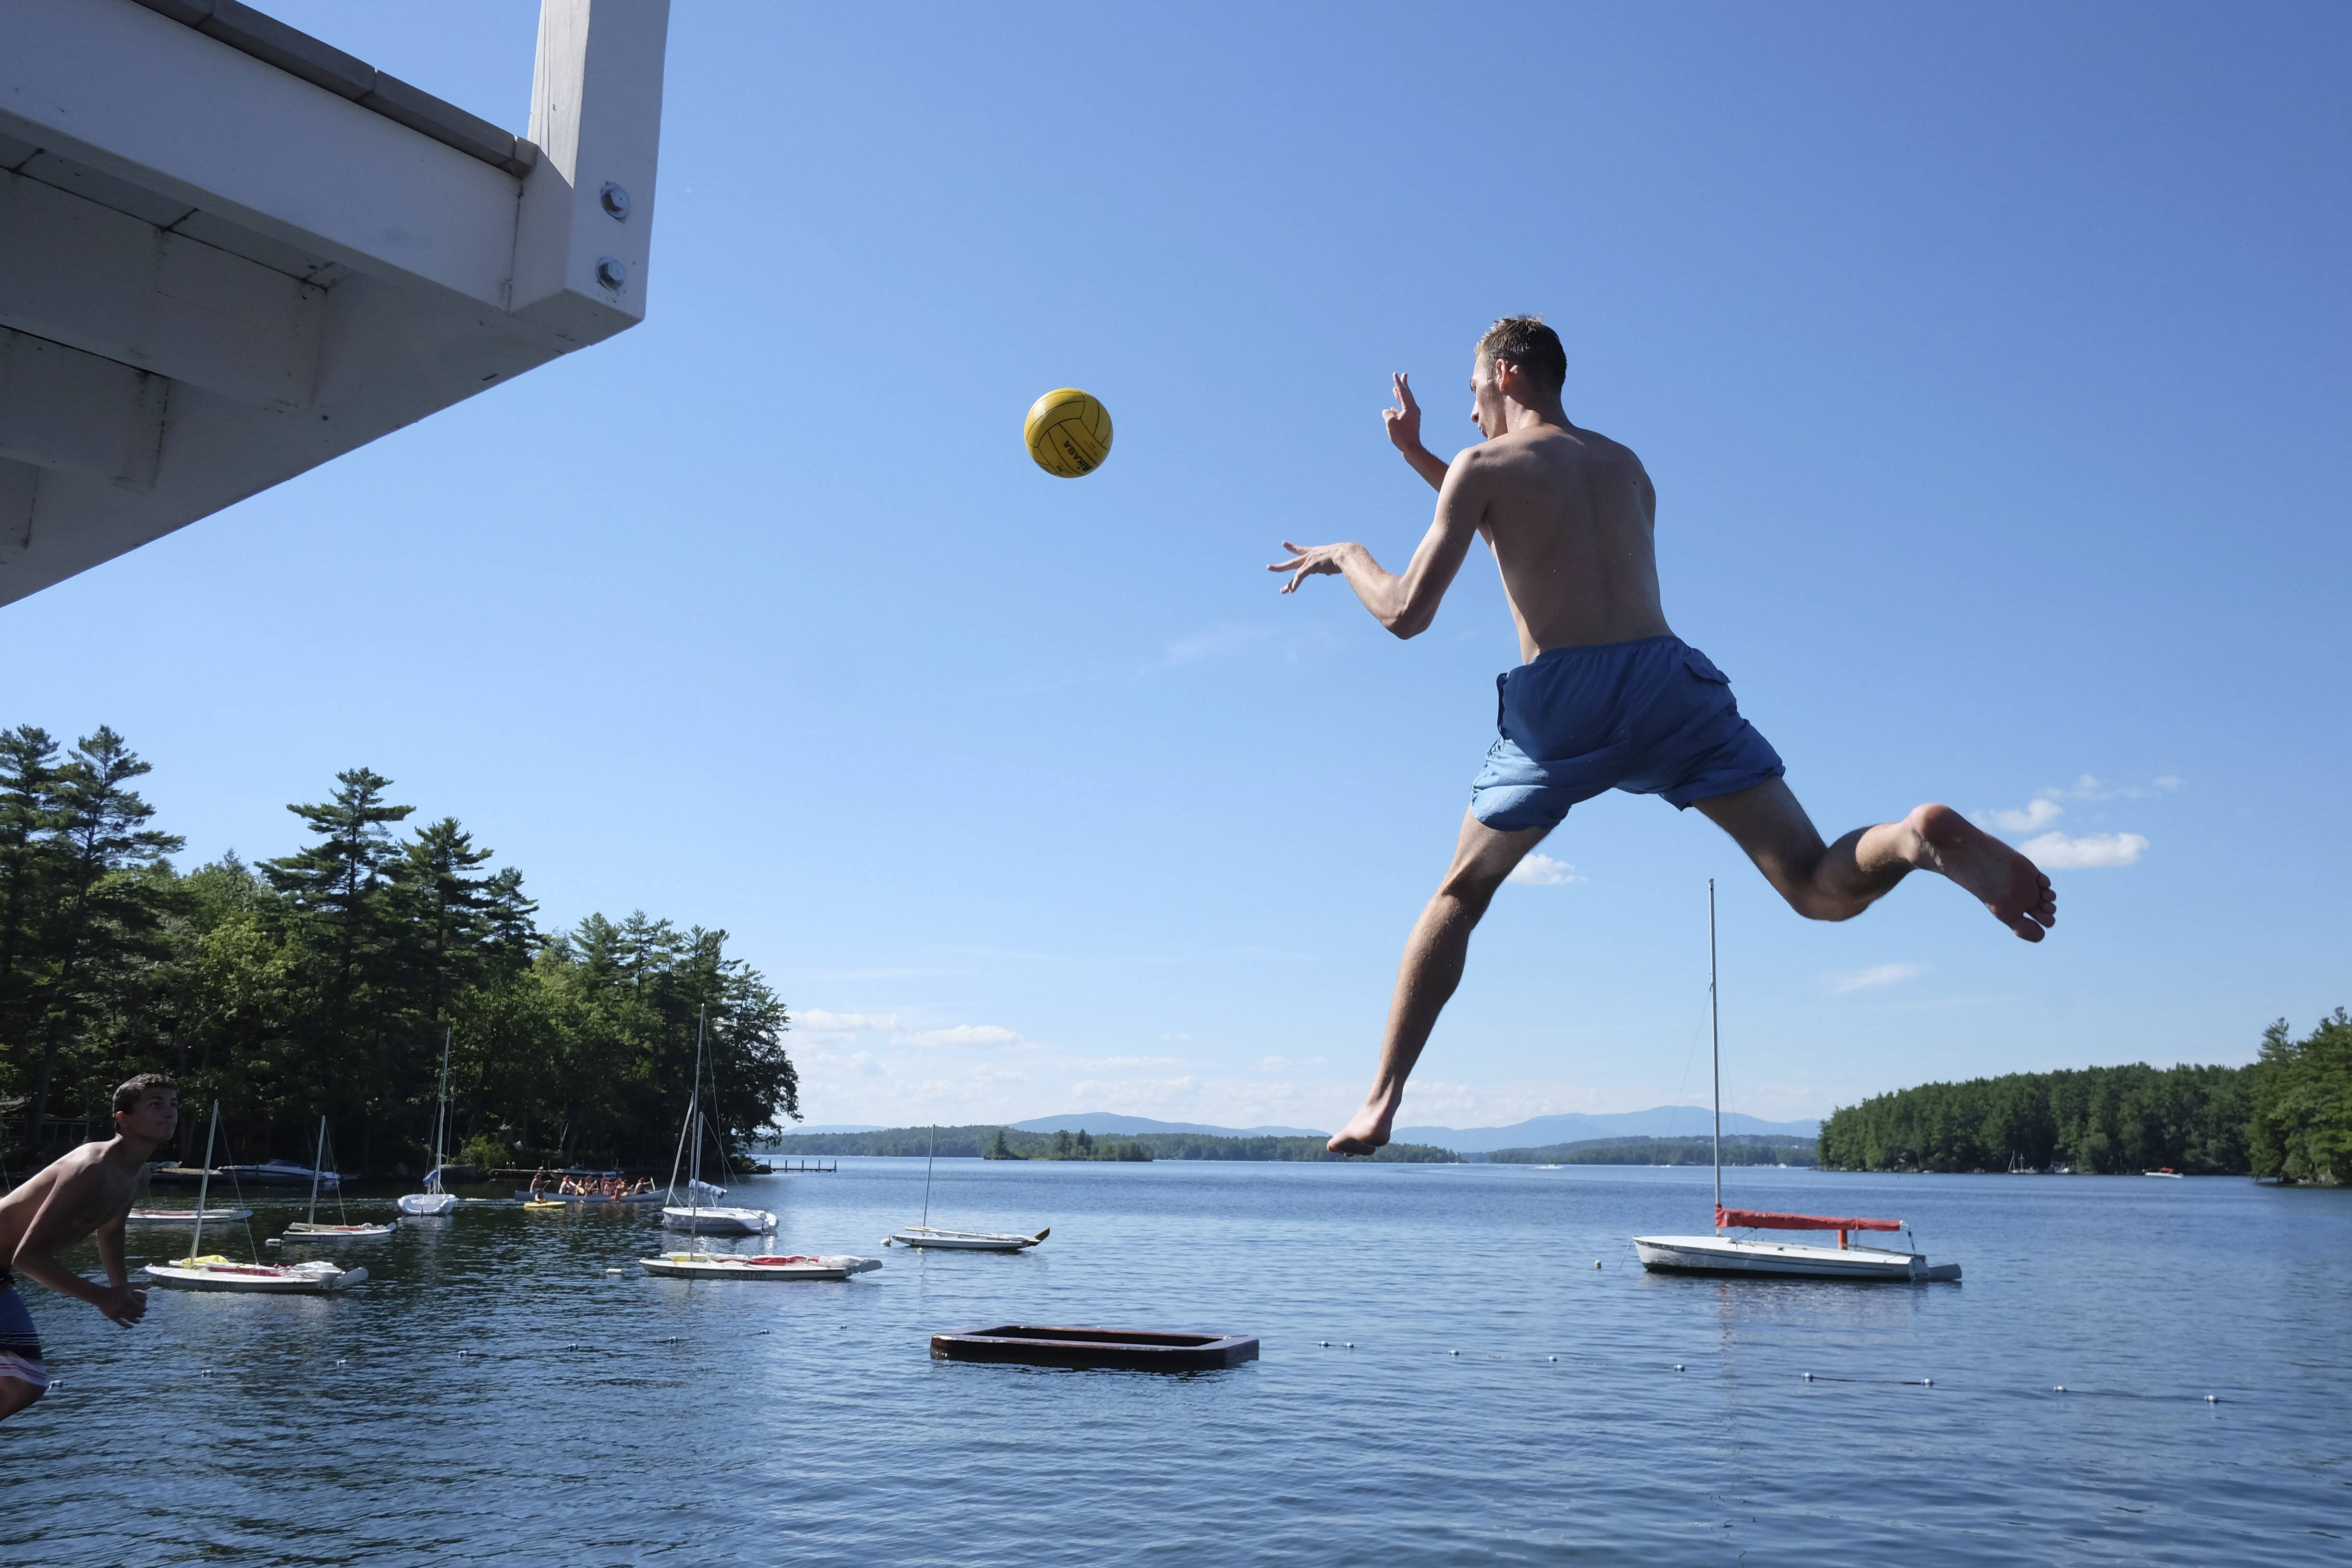 A camper takes a leap off of the 11-foot diving tower at Main Dock of Camp Belknap.